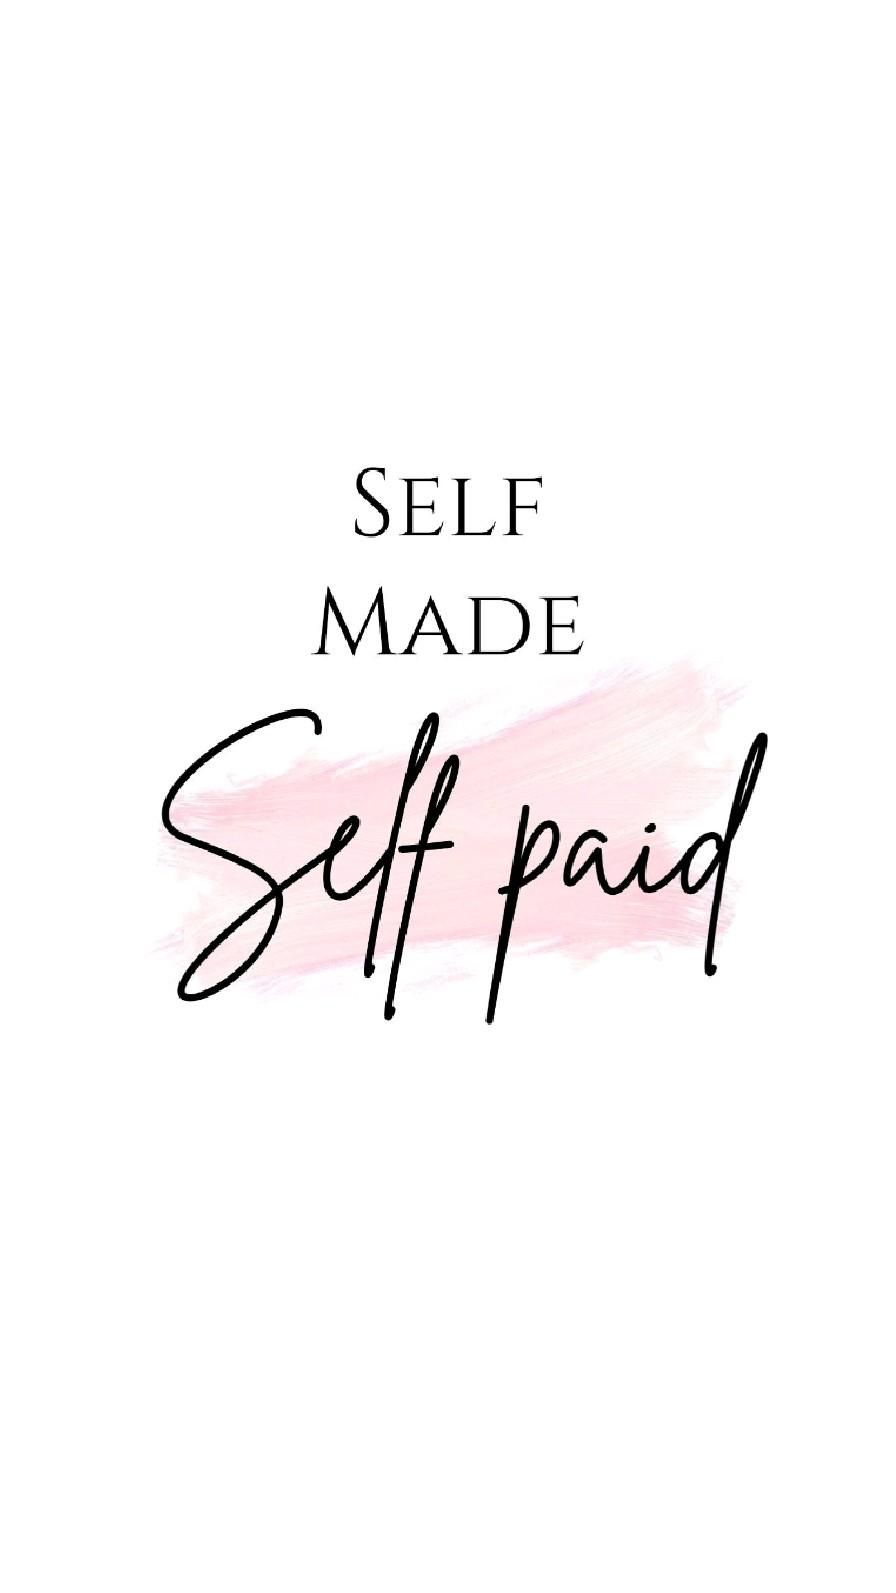 Motivational morning affirmation quotes for boss babes and girl boss